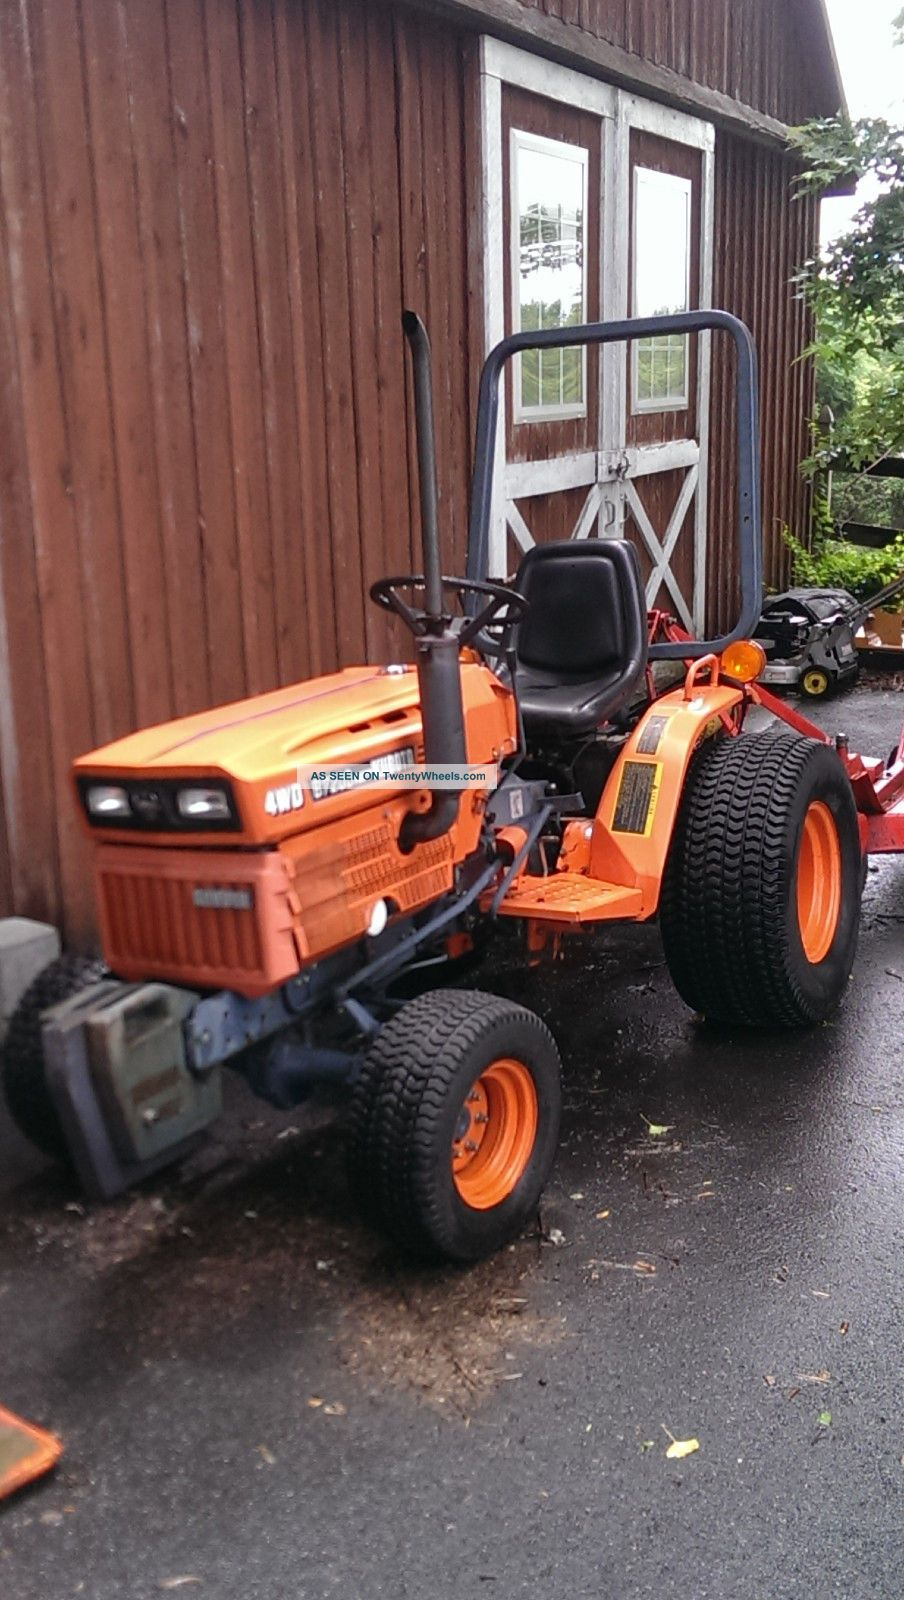 Kubota B7200 Hst 4wd Tractor With Befco Finish Mower And